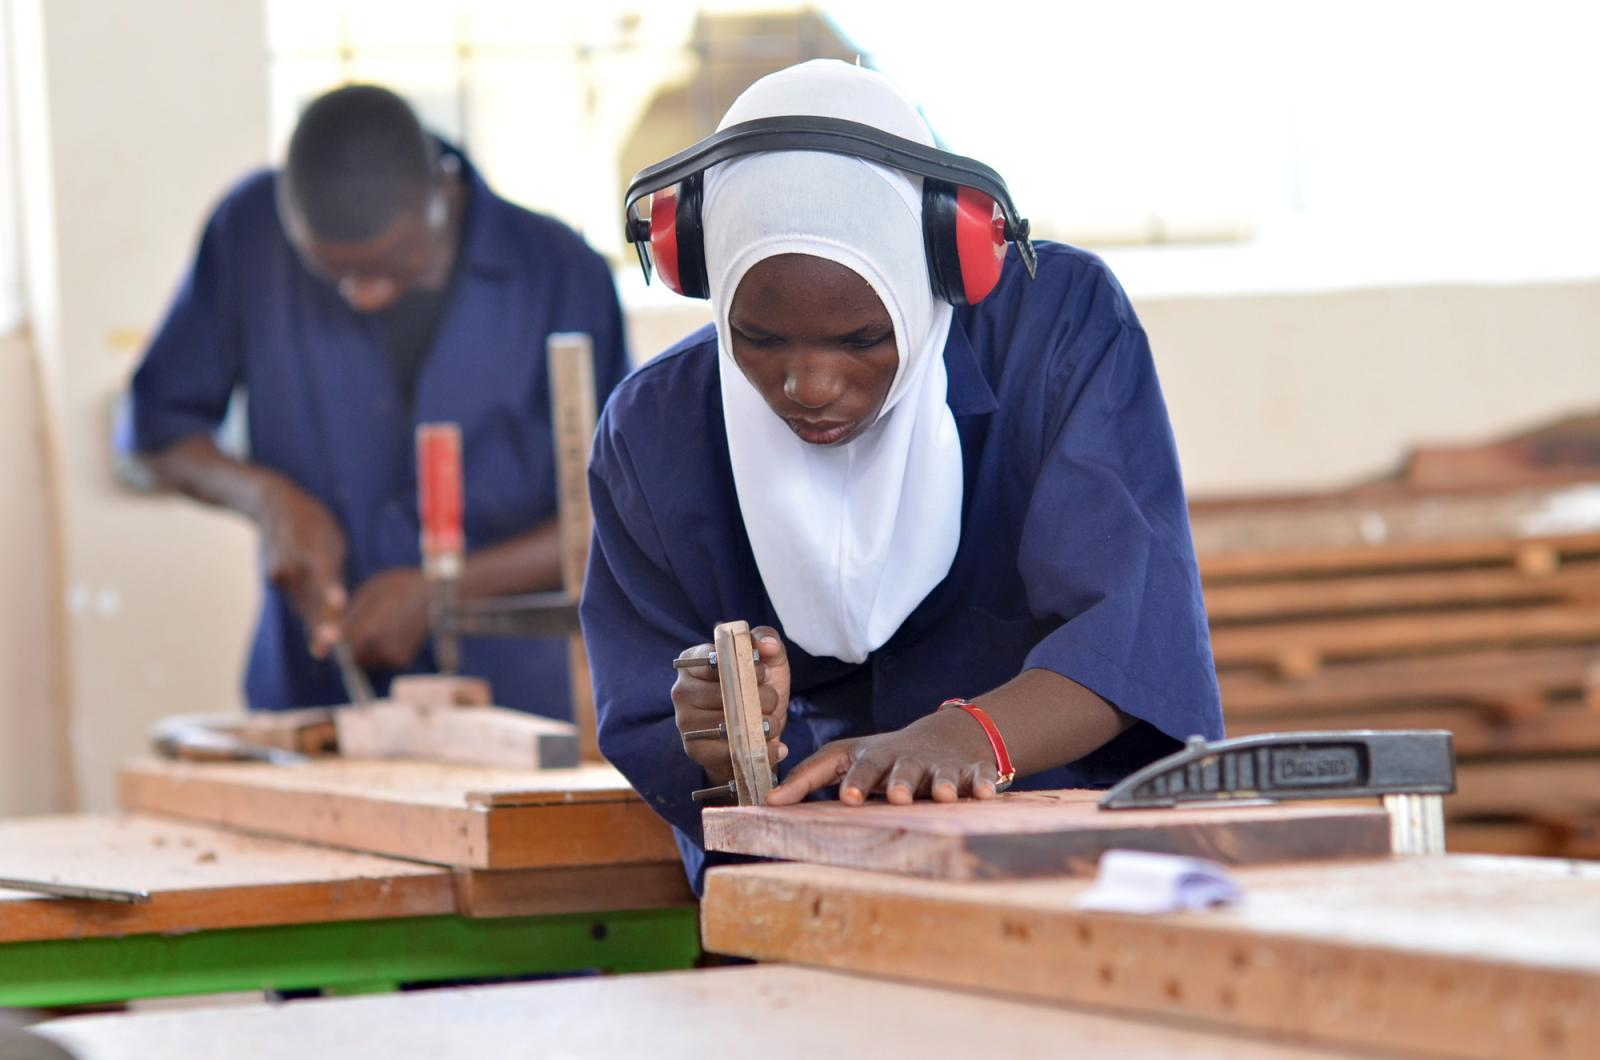 Second Year Vocational Training students, Mariam Hamis (L) works in Capentry Workshop at the Vocational Education Training Center (VETA) in Lindi, Tanzania.